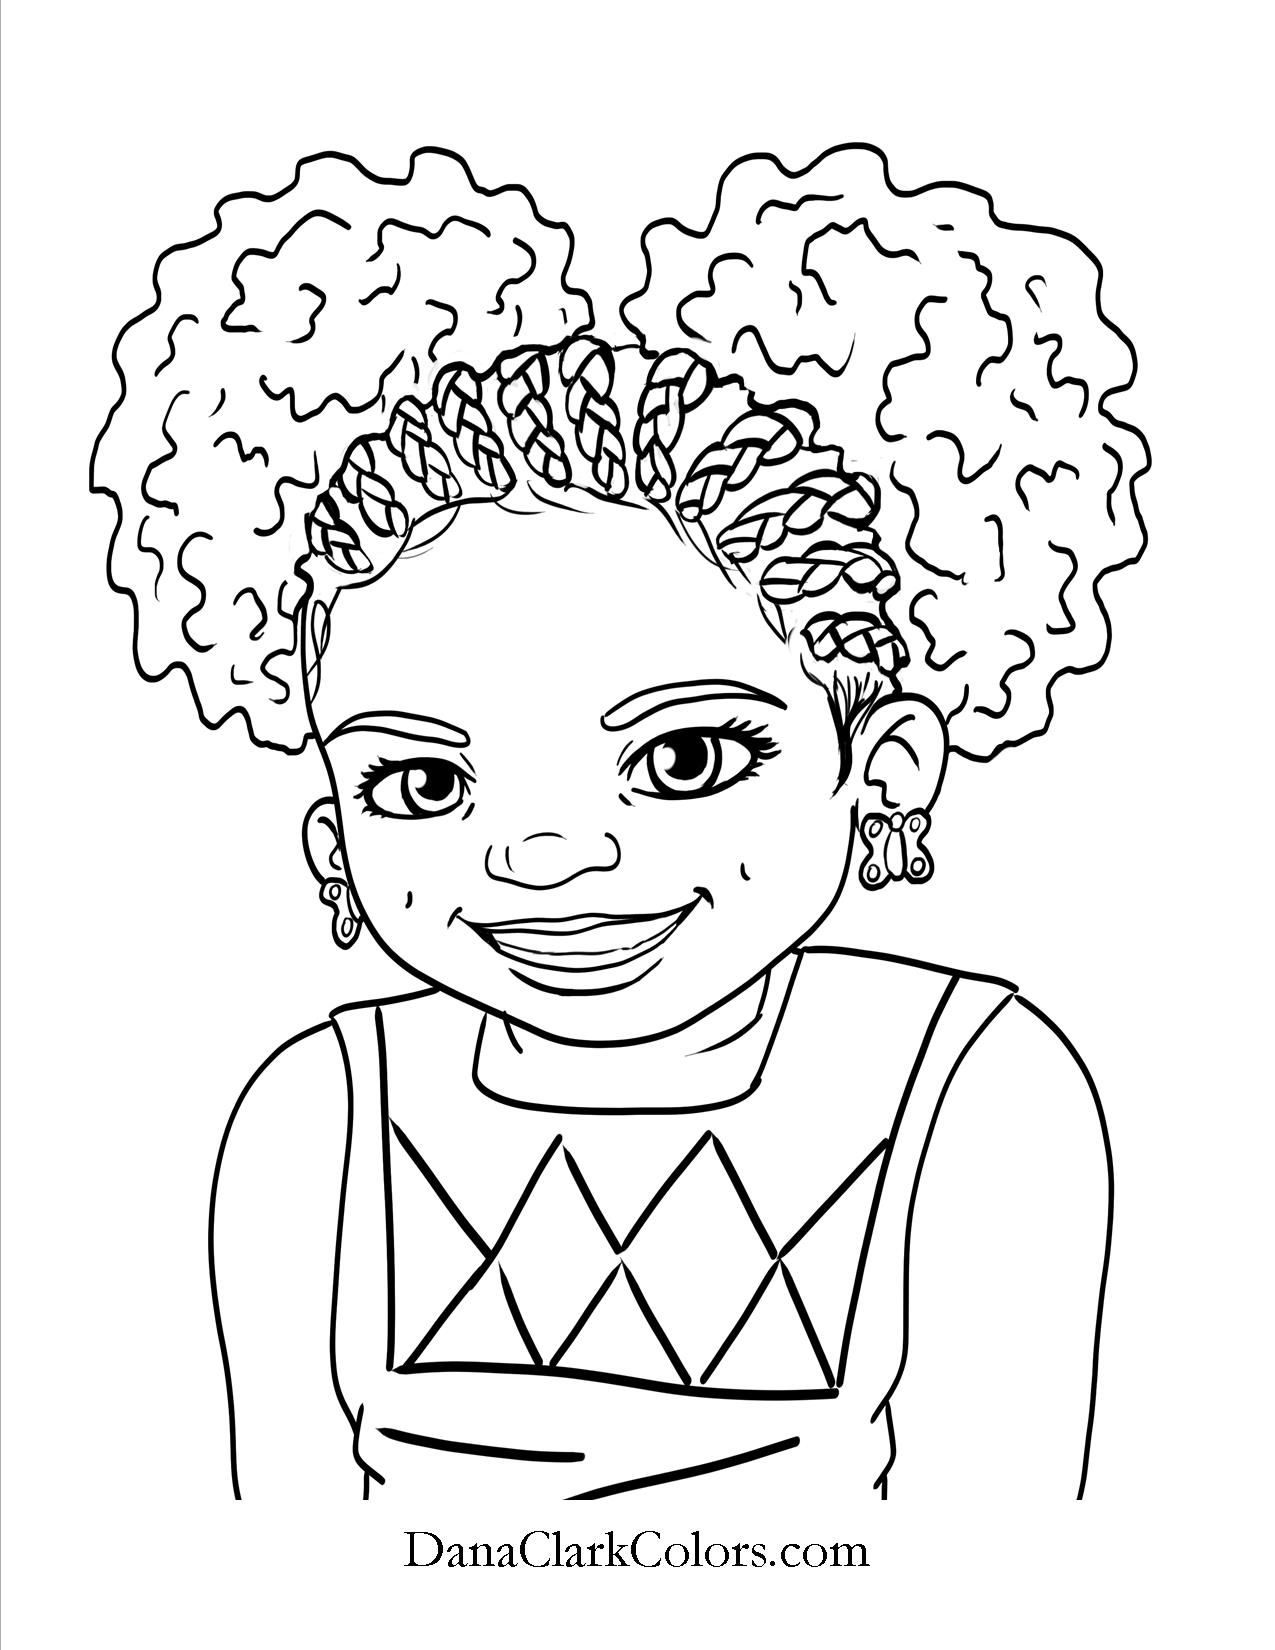 Stevie Wonder Coloring Page | Online Coloring | Piano | Pinterest ...